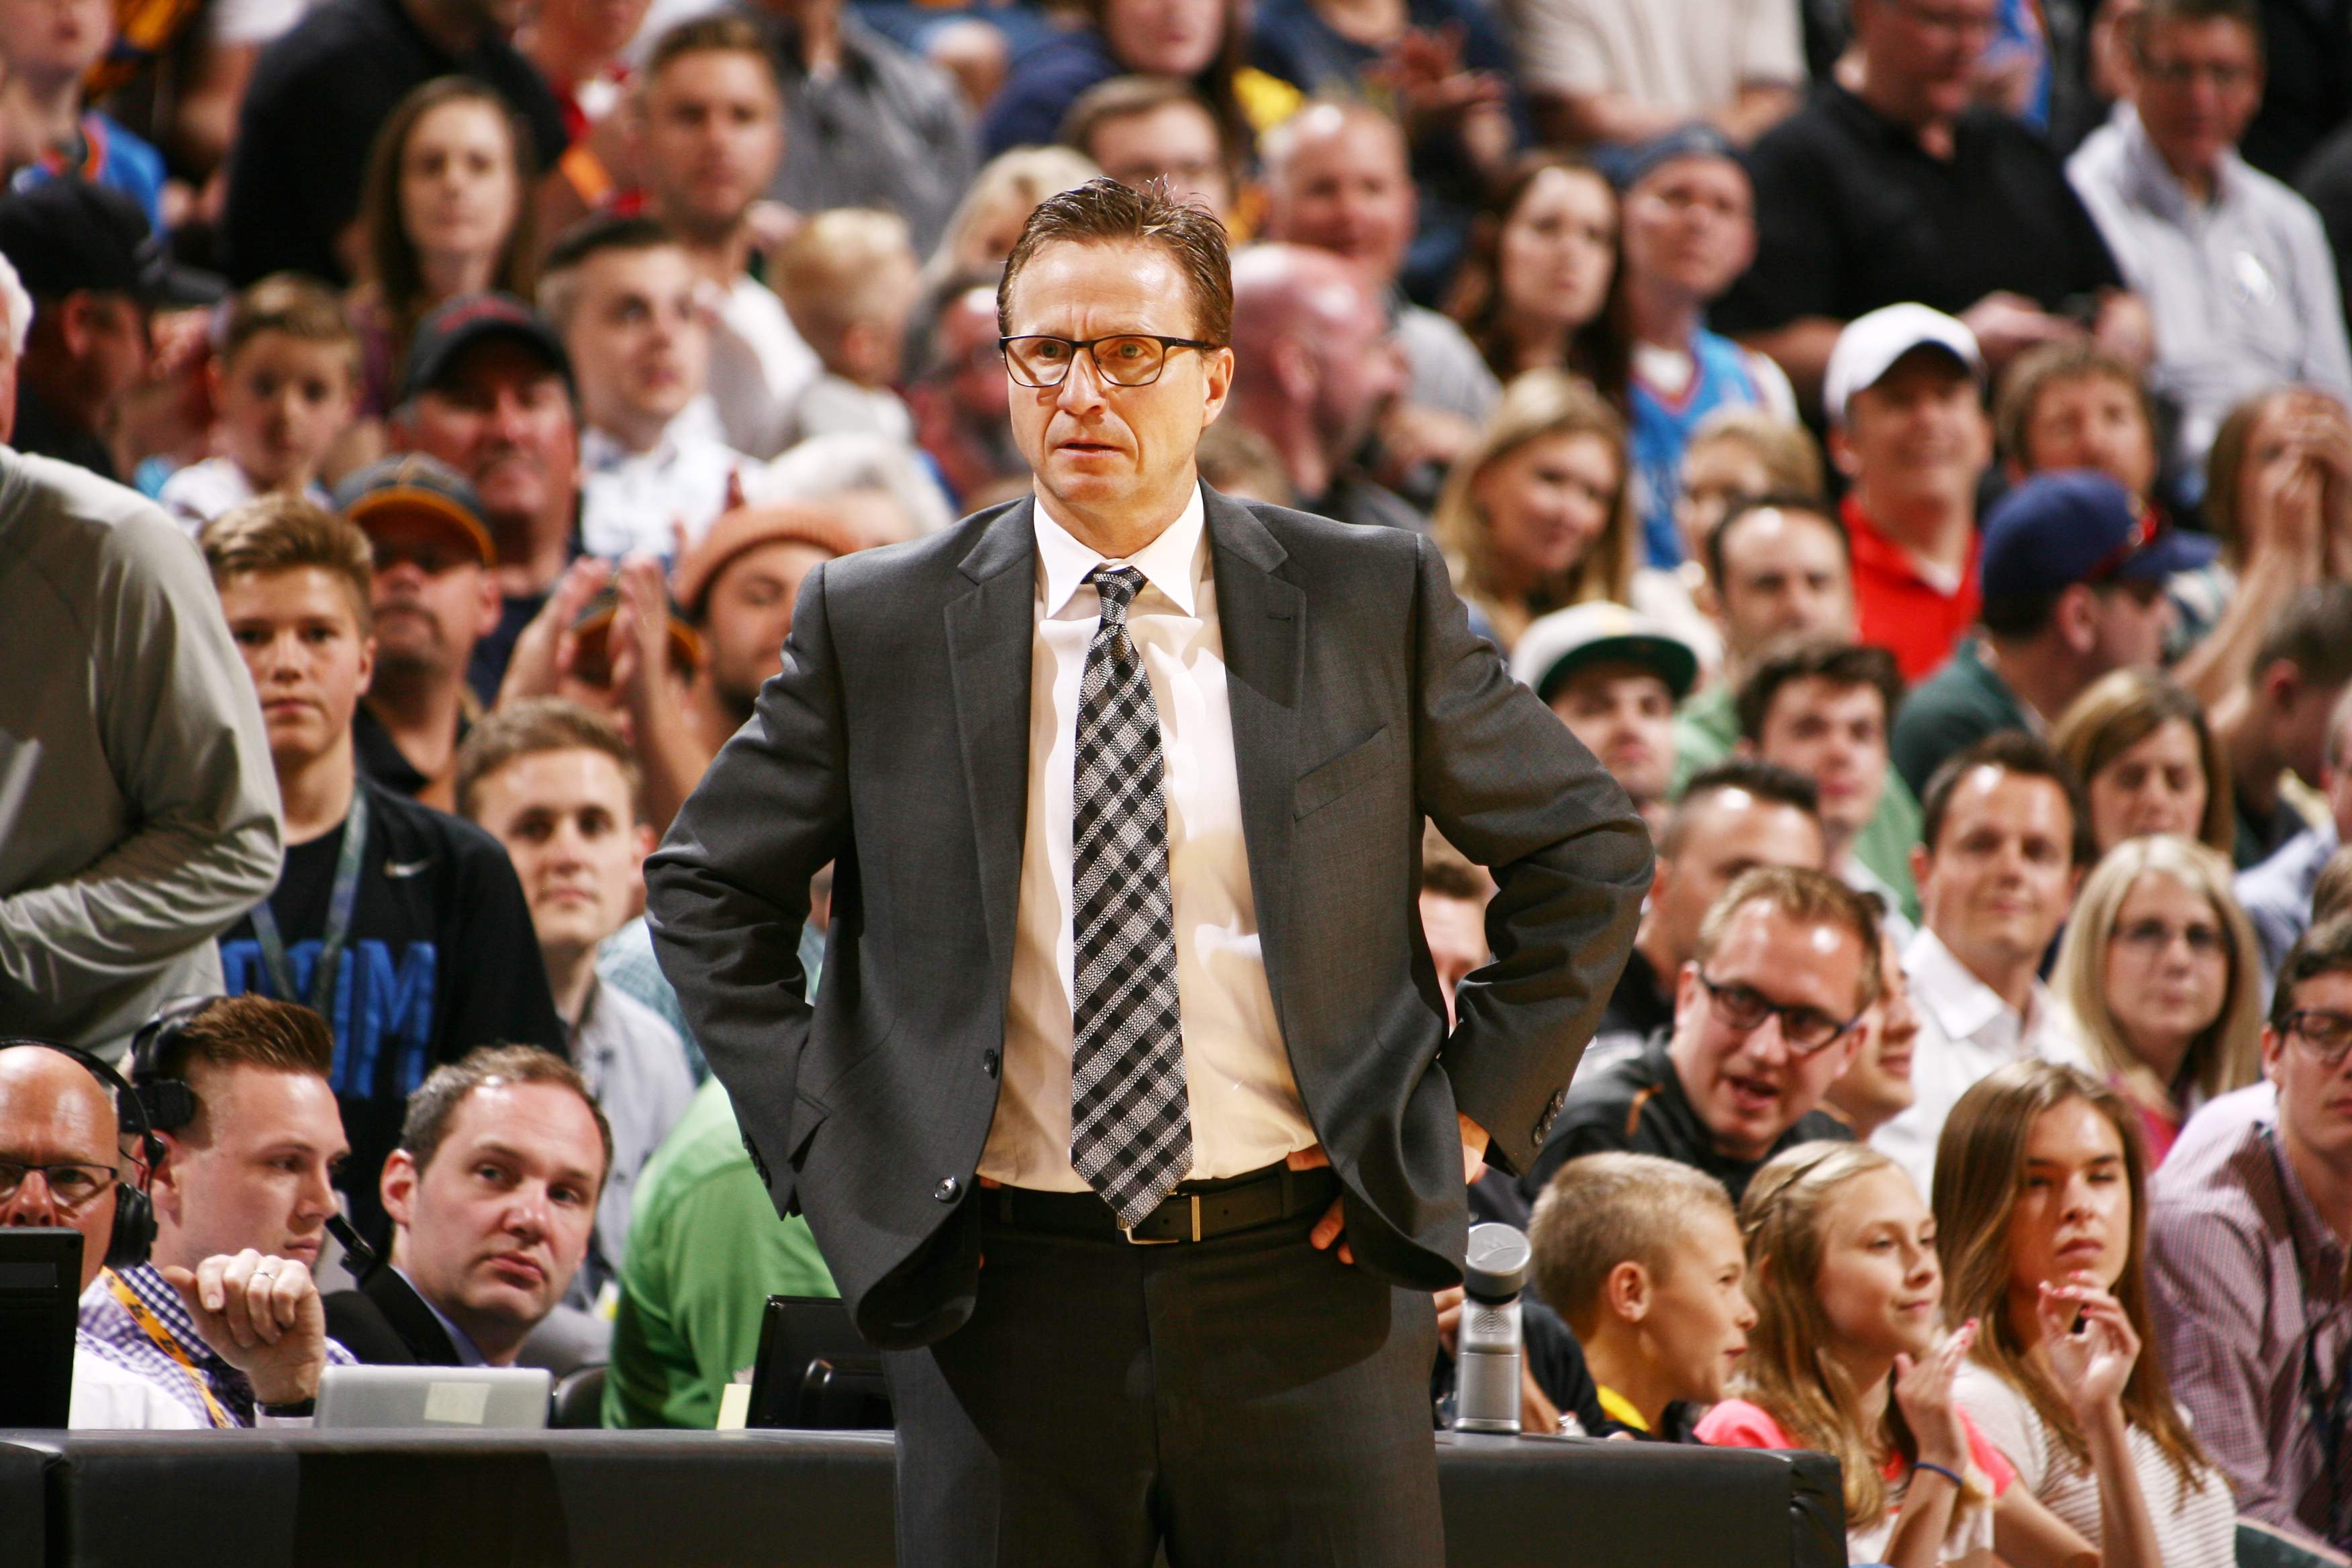 Scott Brooks (Photo by Melissa Majchrzak/NBAE via Getty Images)